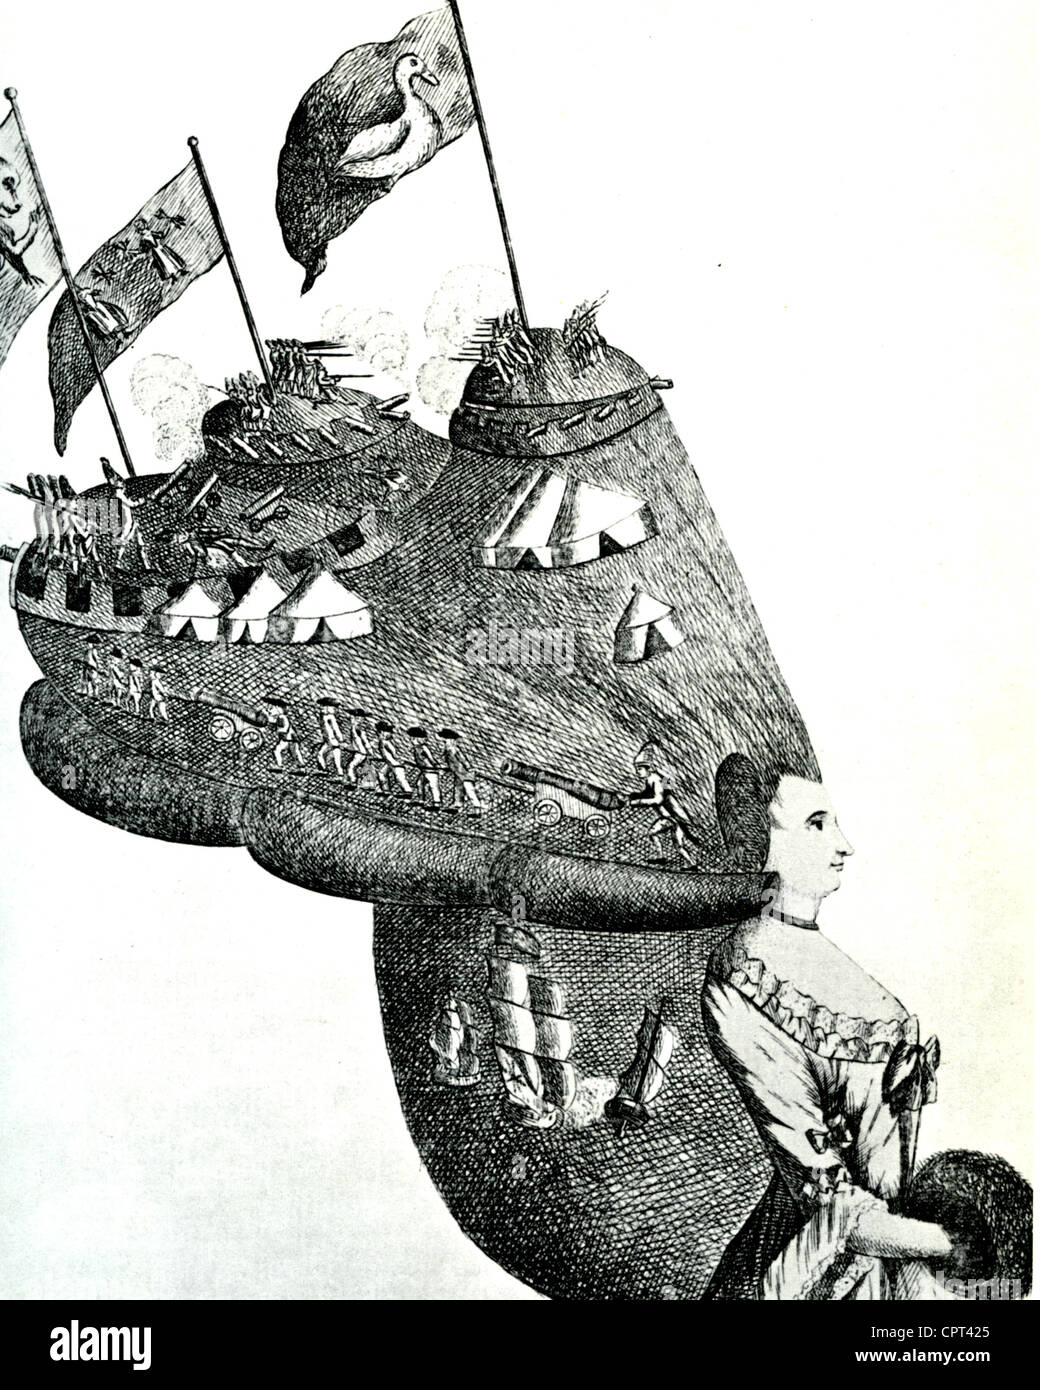 'BUNKER'S HILL, or AMERICA'S HEAD-DRESS'  A British cartoon combining American War of Independence - Stock Image